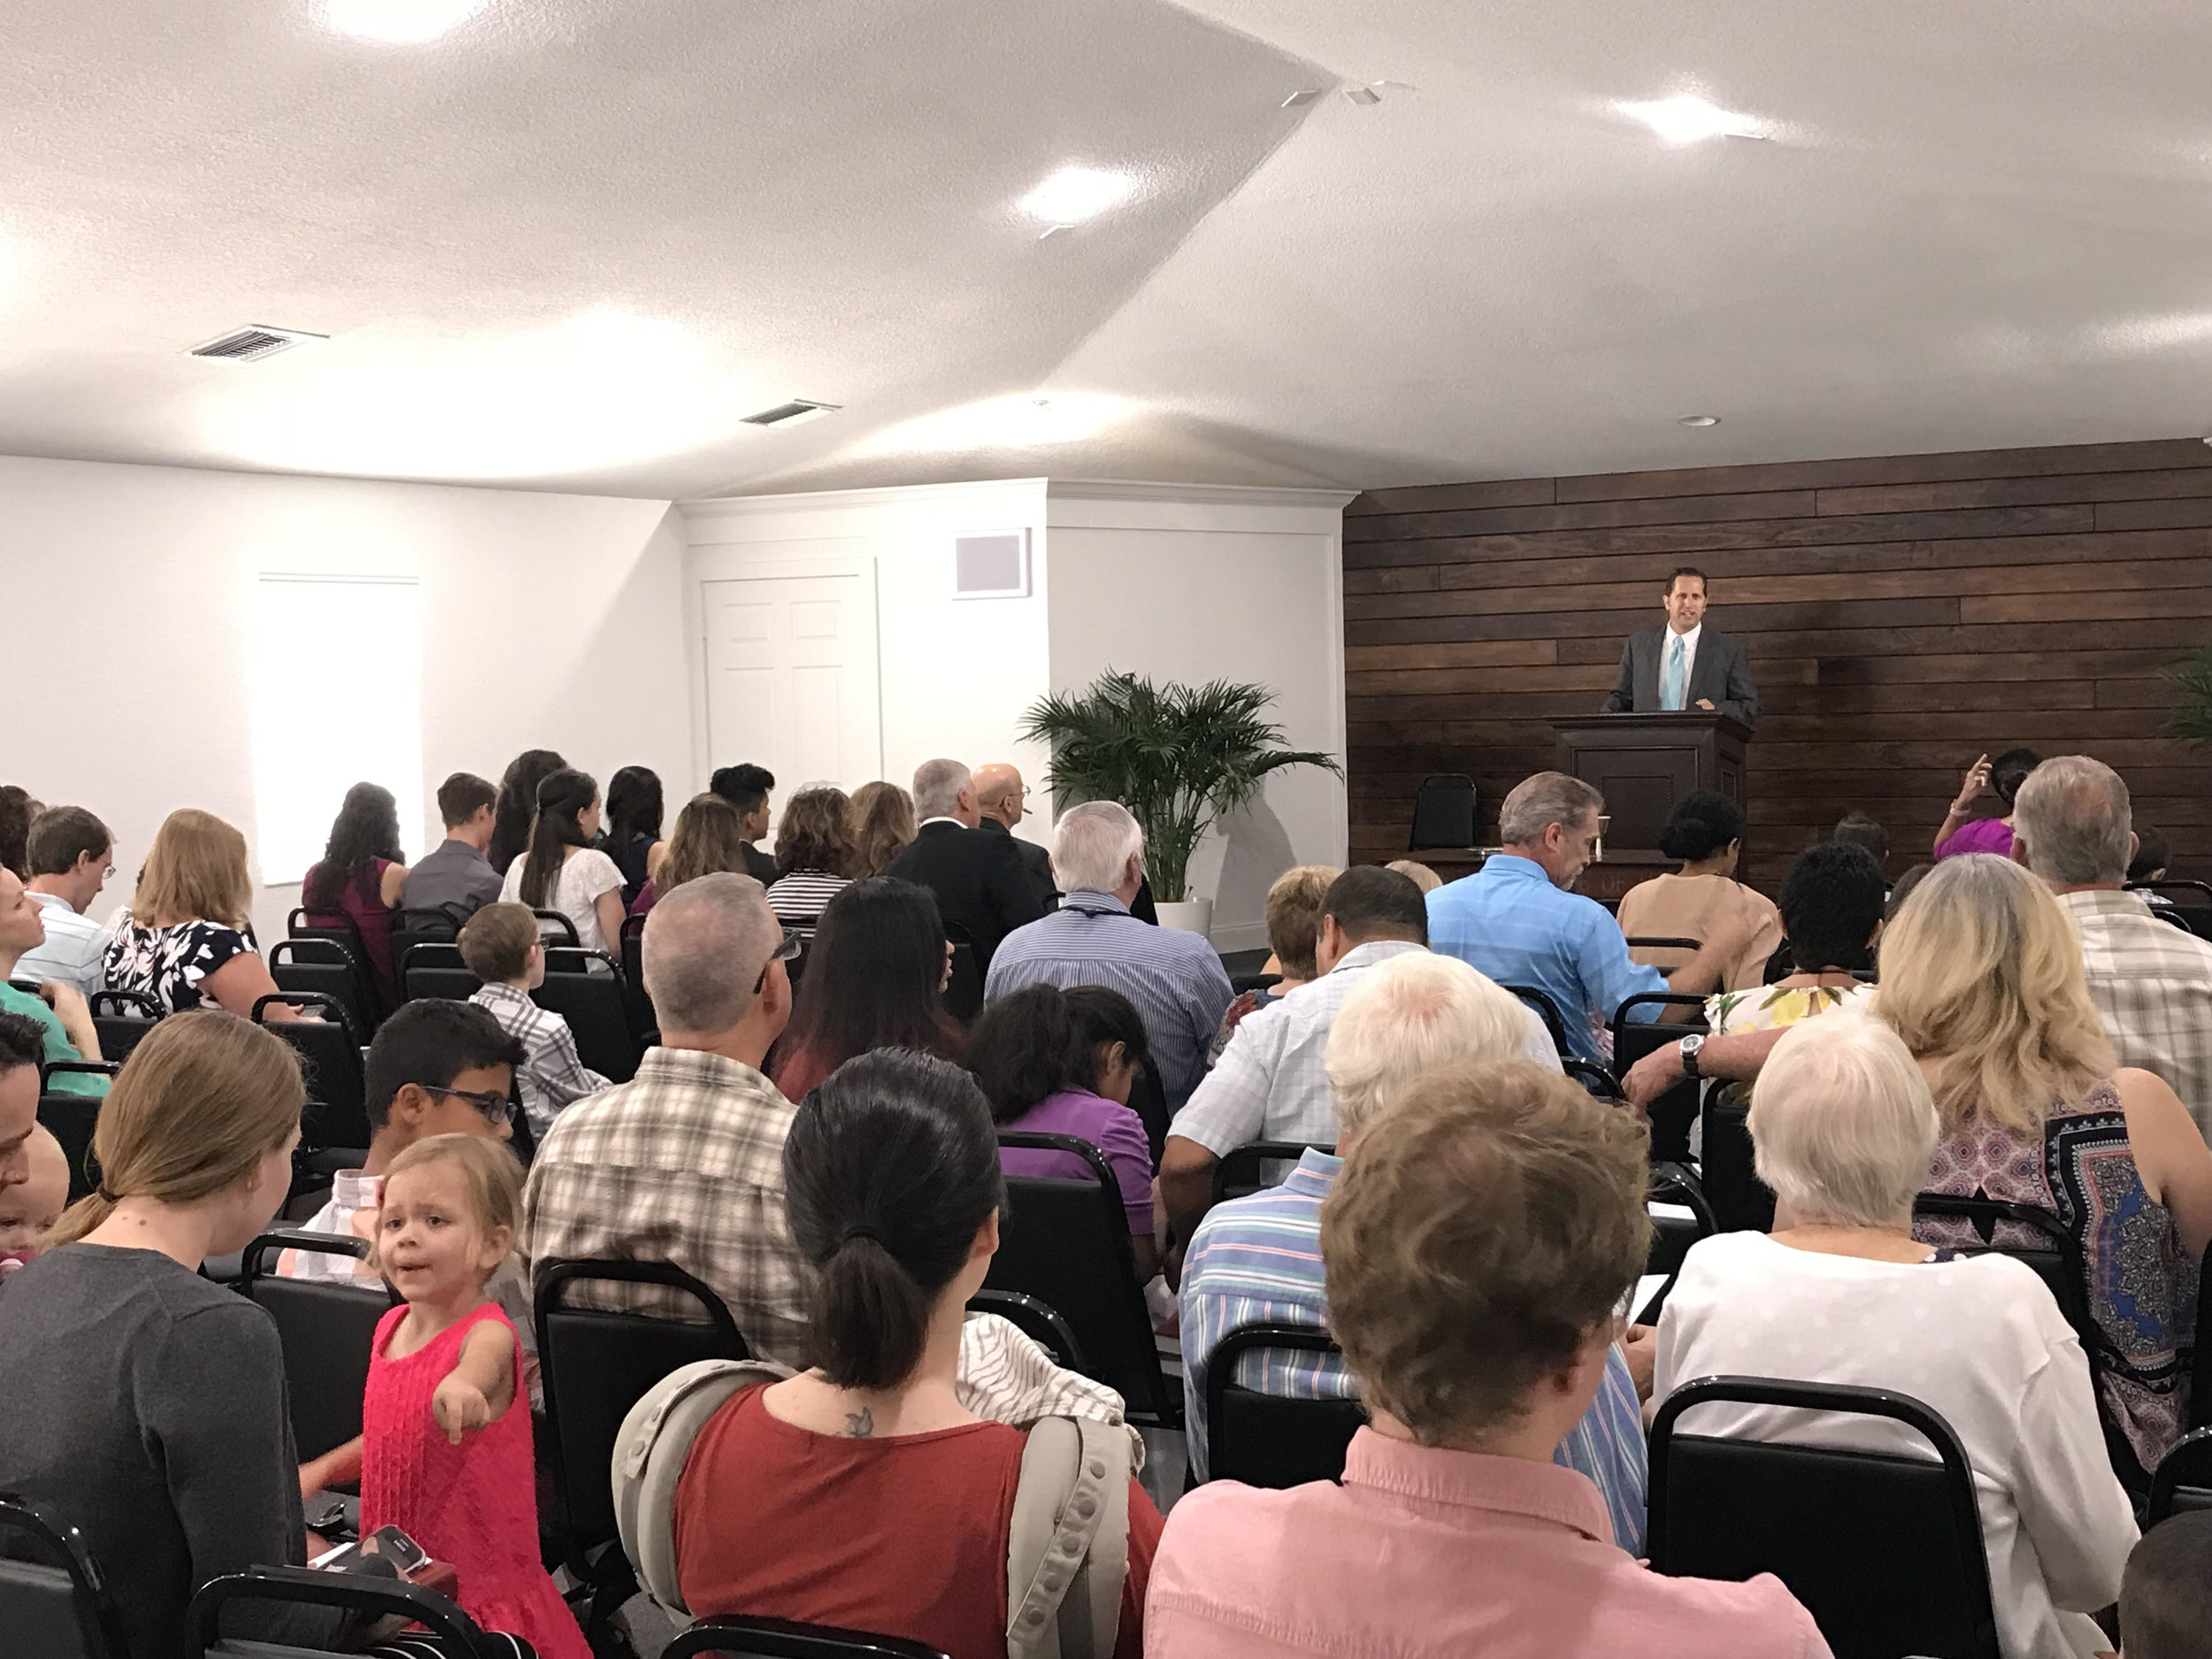 Growing - By God's grace, we were able to purchase a property at the corner of Cashmere & Del Rio Blvd. The Lord is abundantly generous and we held our first worship services at the new property on June 10, 2018. Our worship services are at 10:30 a.m. and 4:30 p.m. For more information about them, please click here.